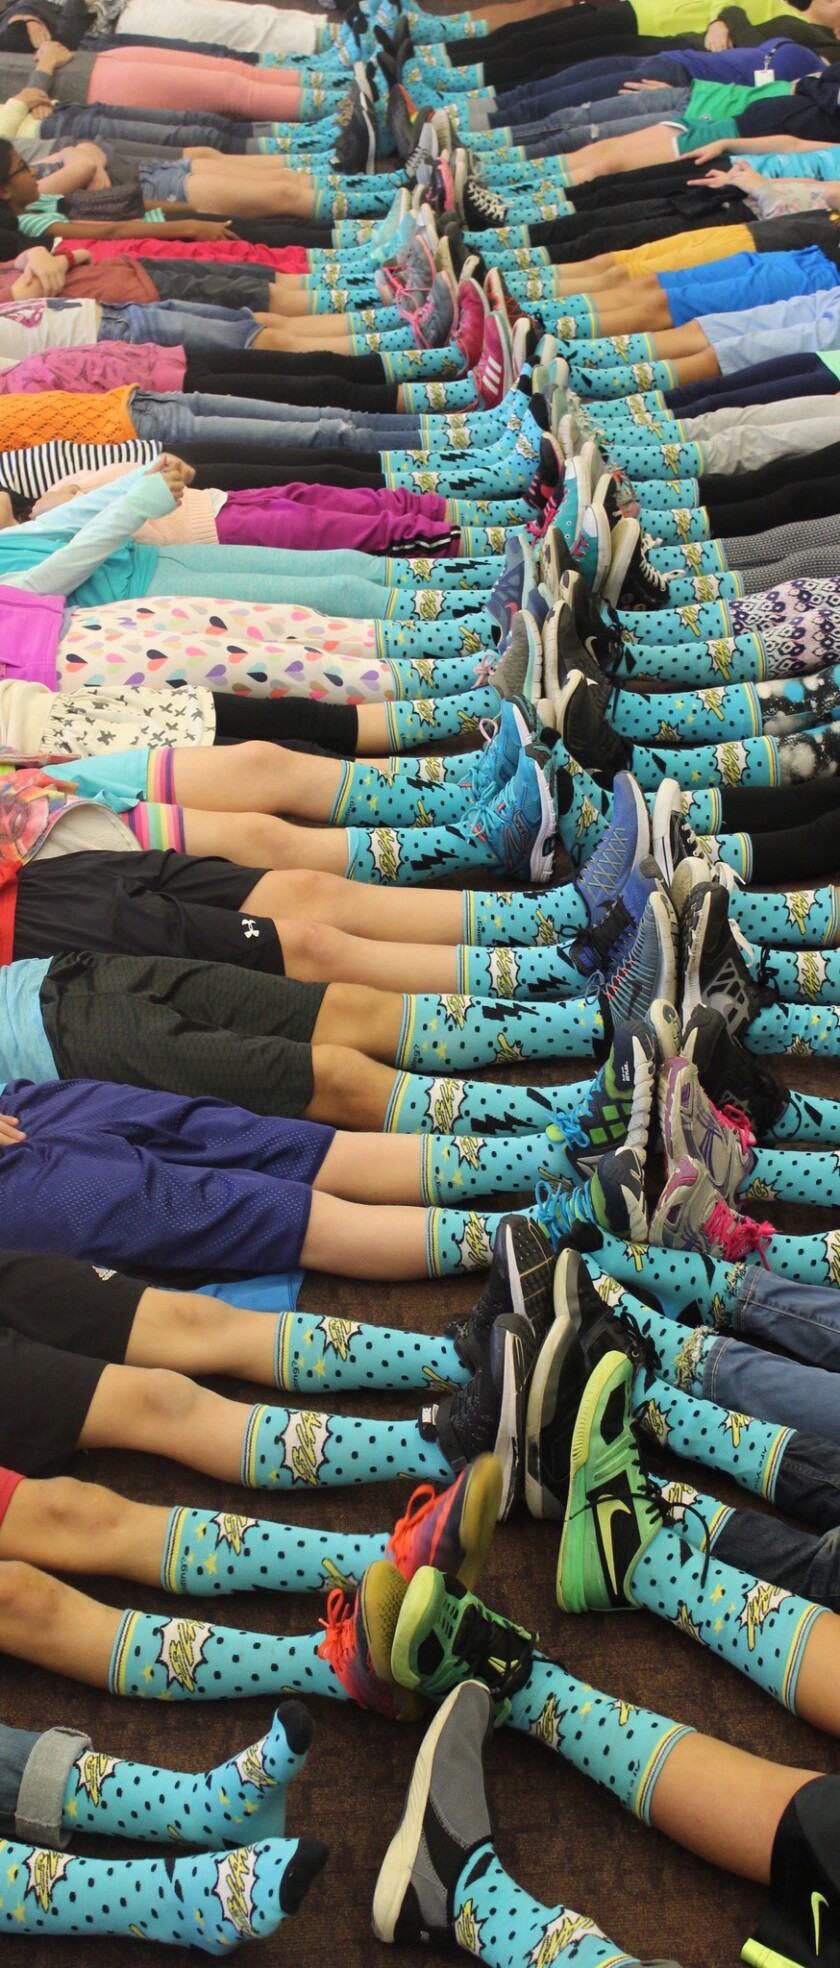 Solana Pacific students recently sold 111 pairs of socks and raised $625 to benefit a nonprofit group called Project ALS.